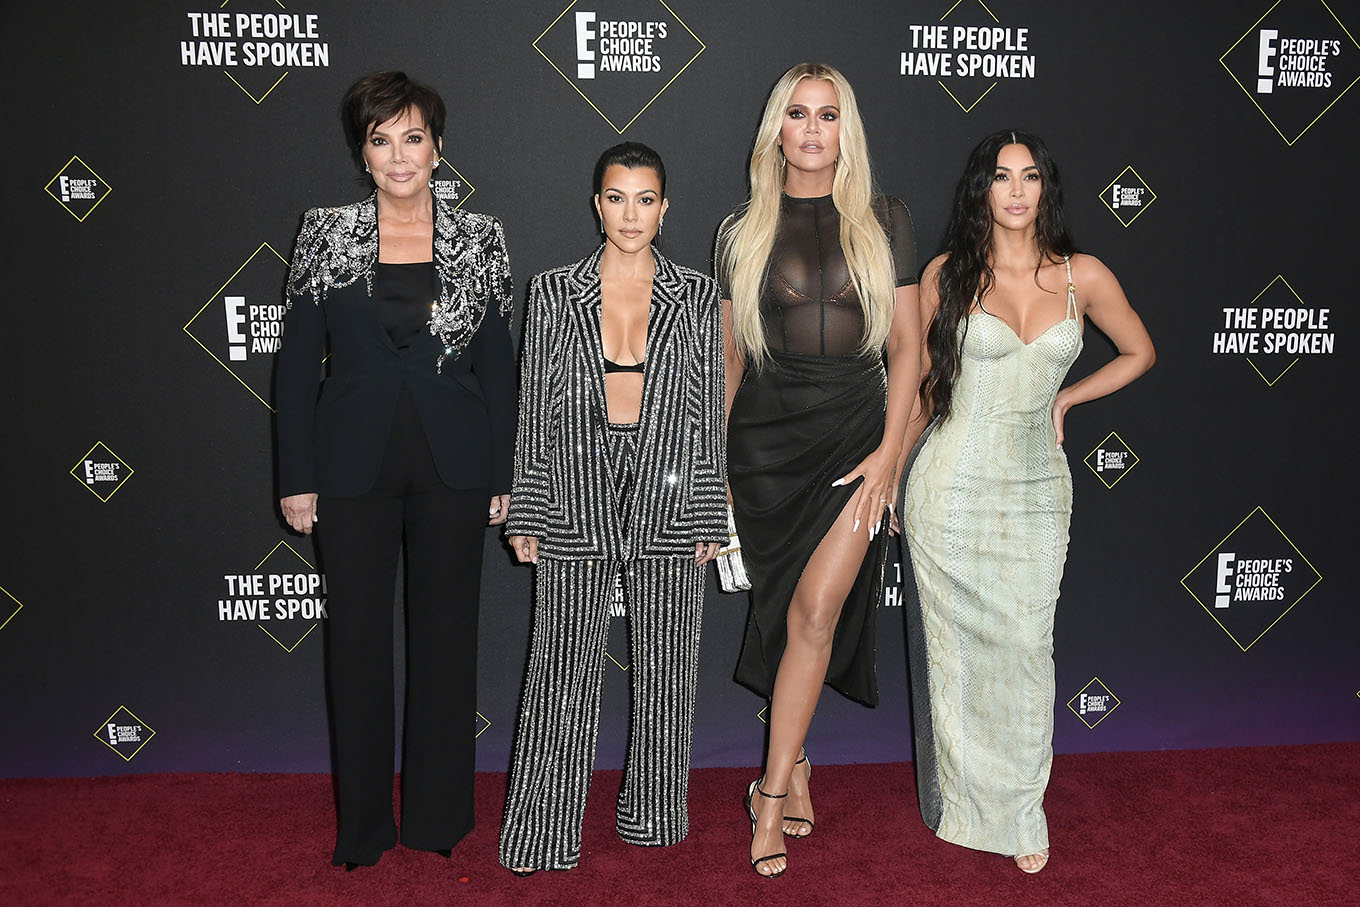 2019-e-peoples-choice-awards-arrivals-2